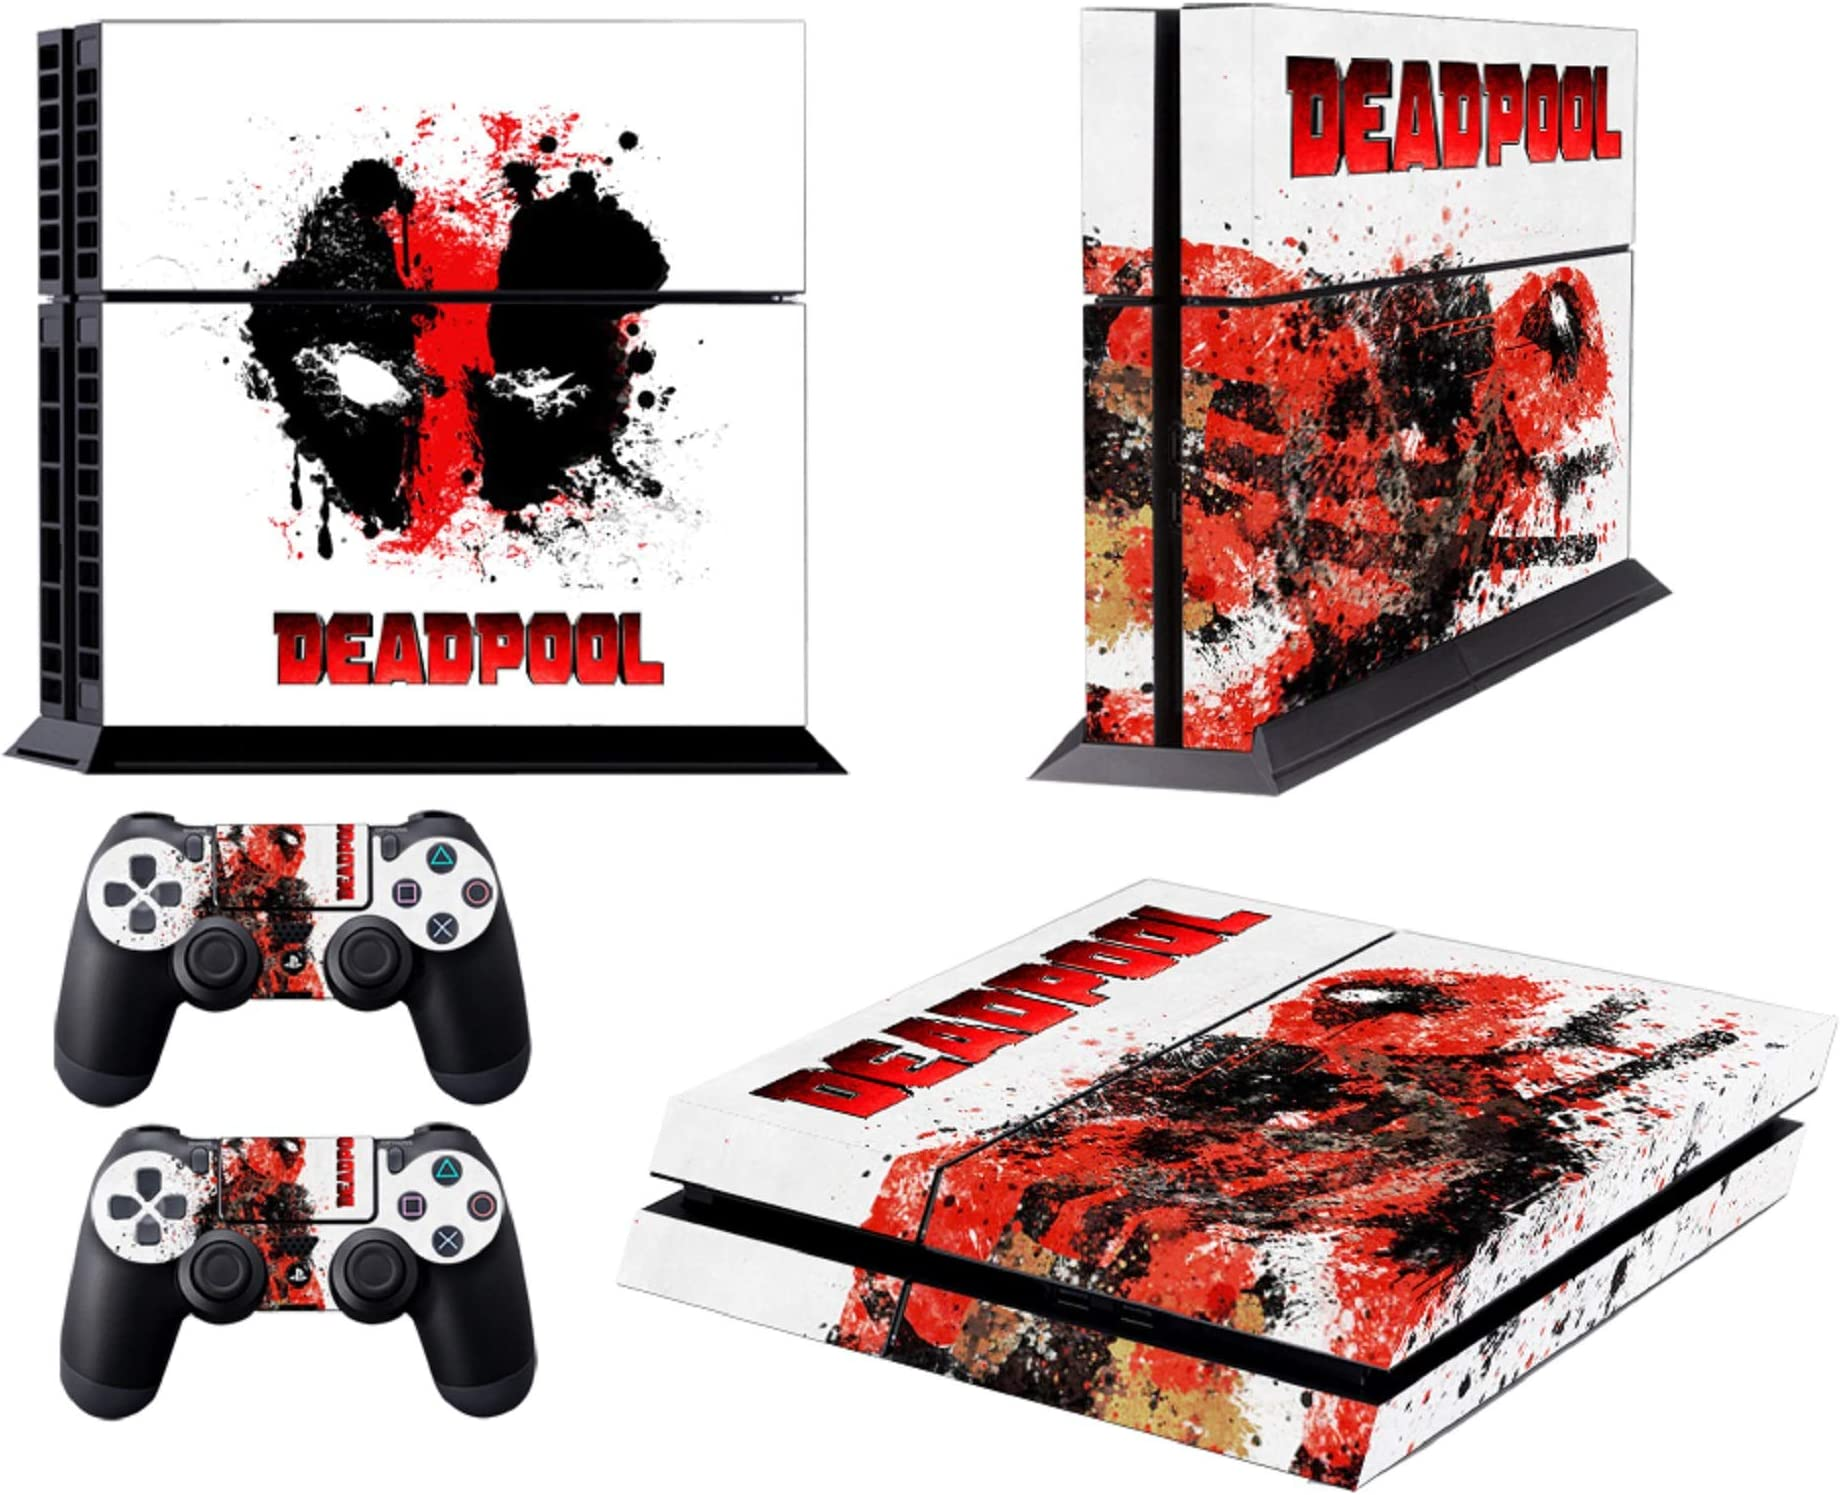 Video Game Accessories Learned Xbox One X Deadpool Skin Sticker Console Decal Vinyl Xbox Controller Easy To Lubricate